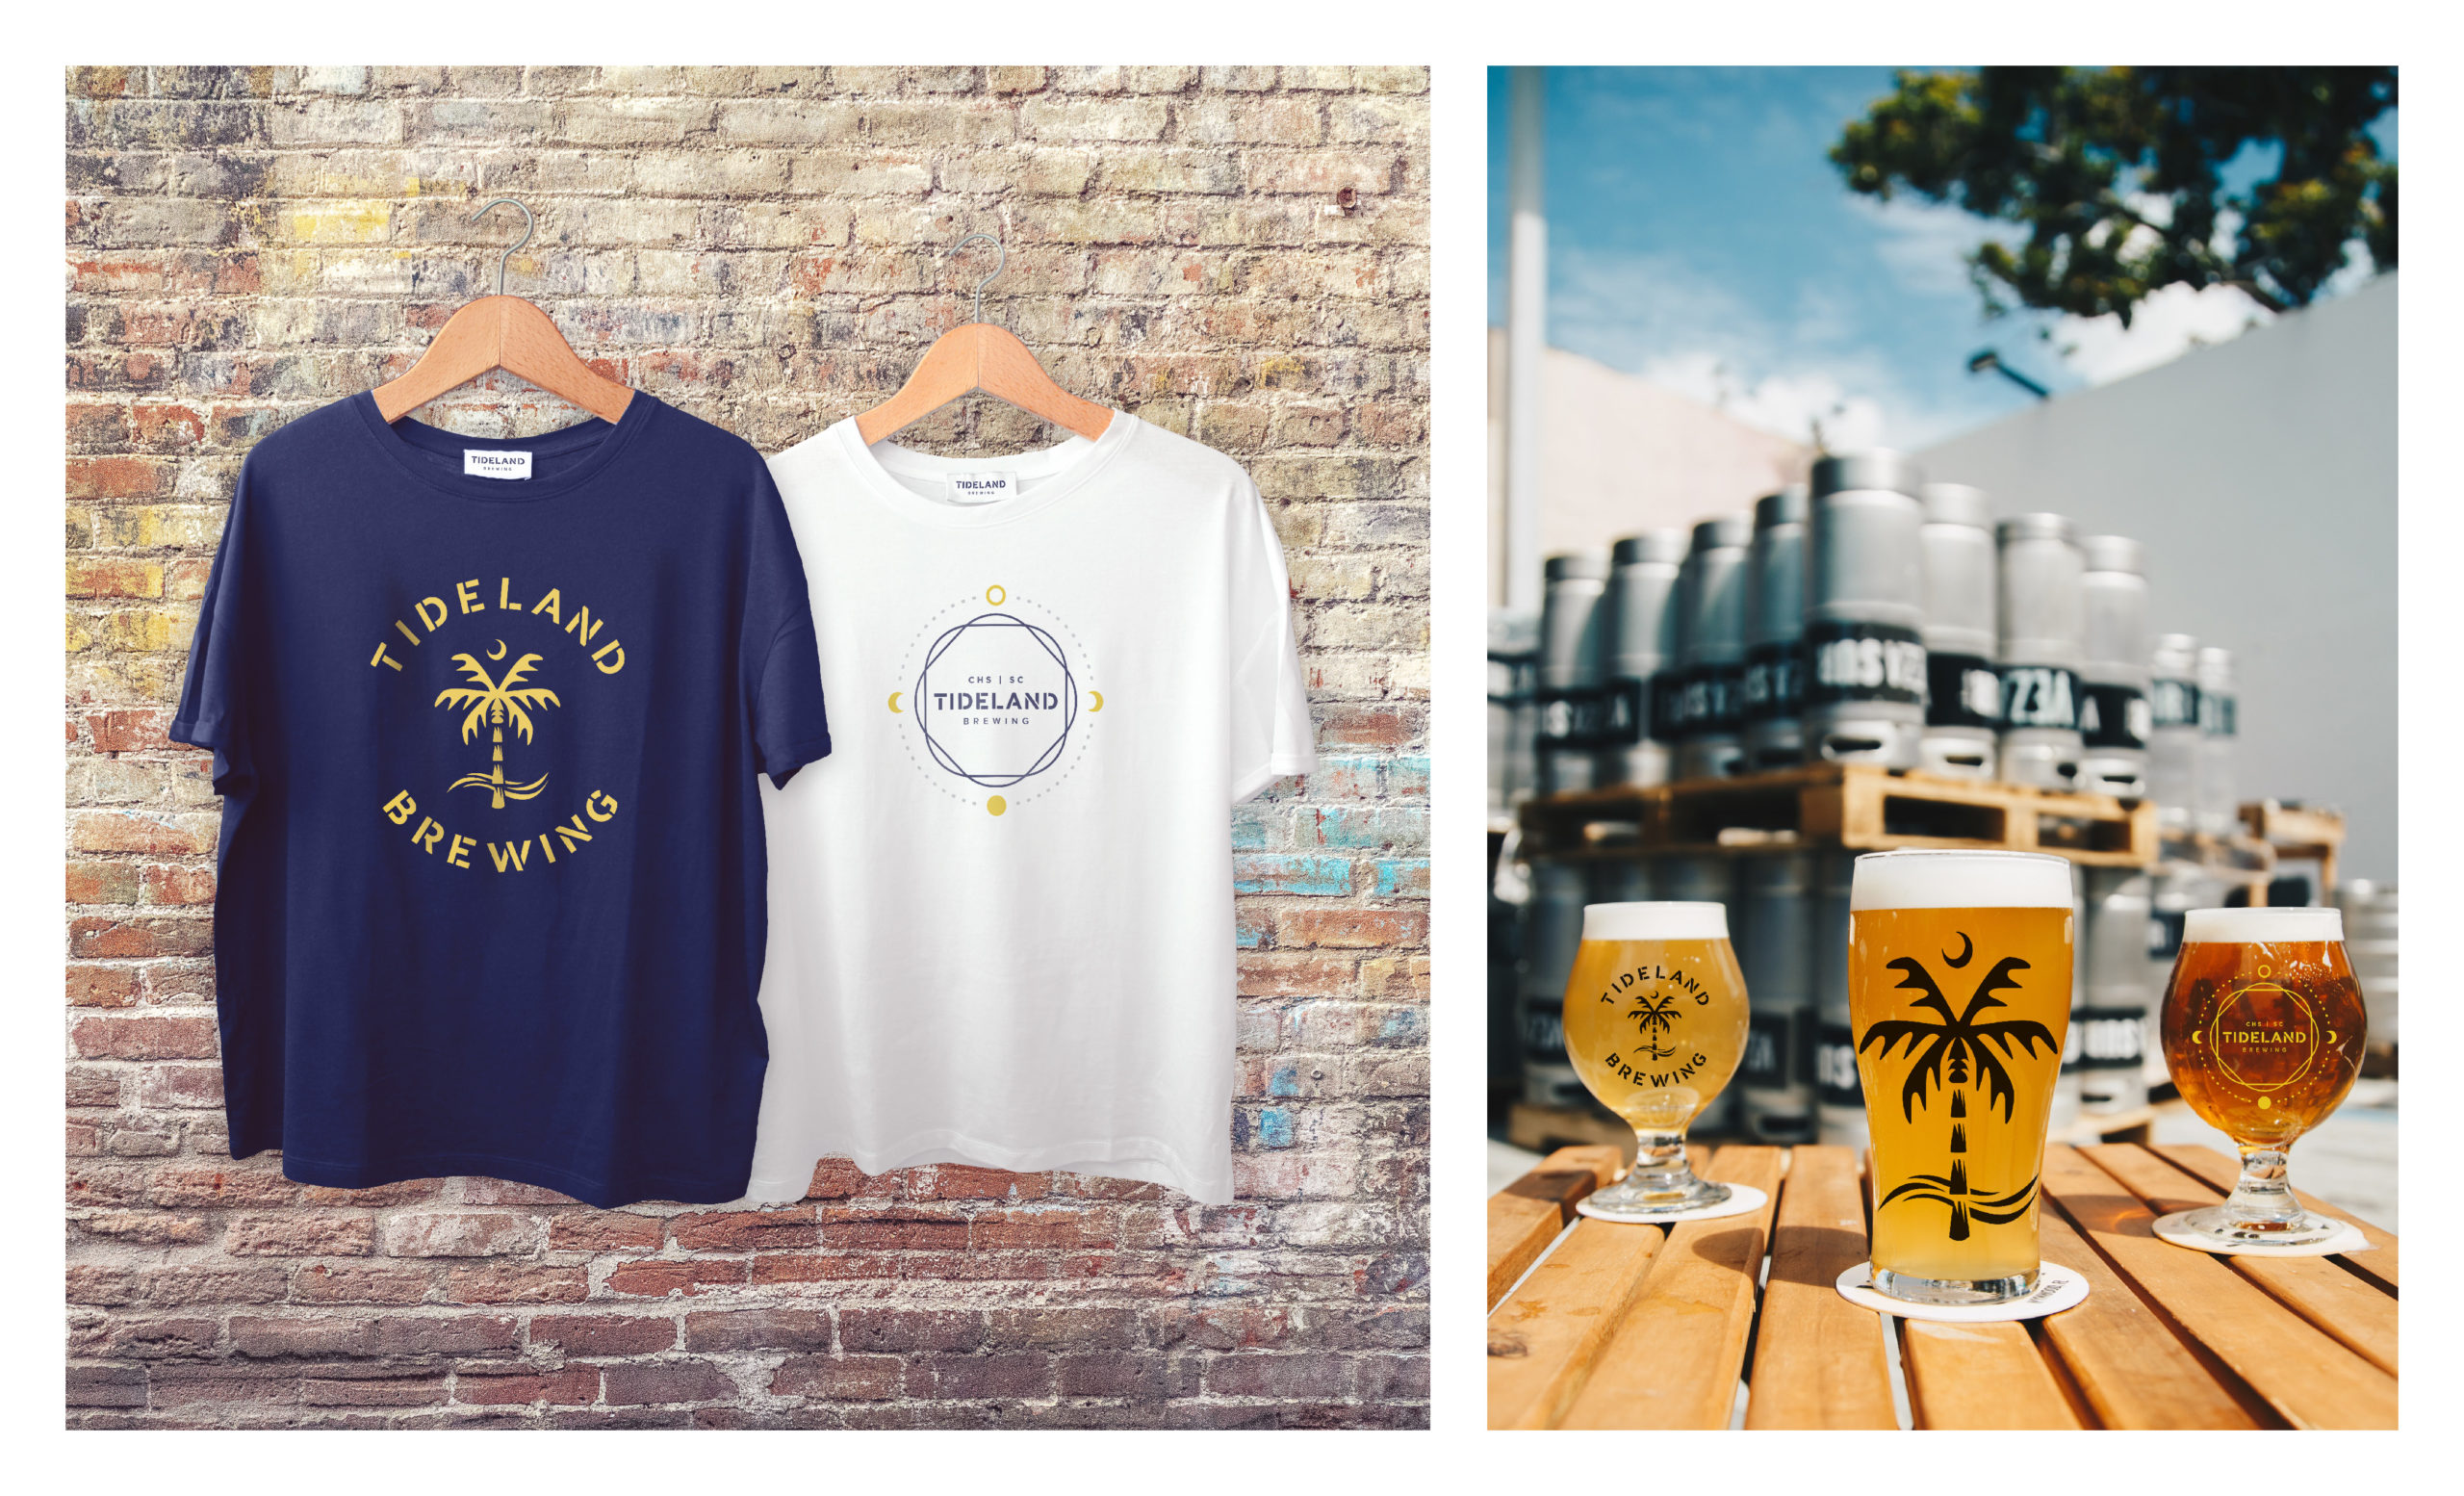 Tideland Brewing Shirts and Beers